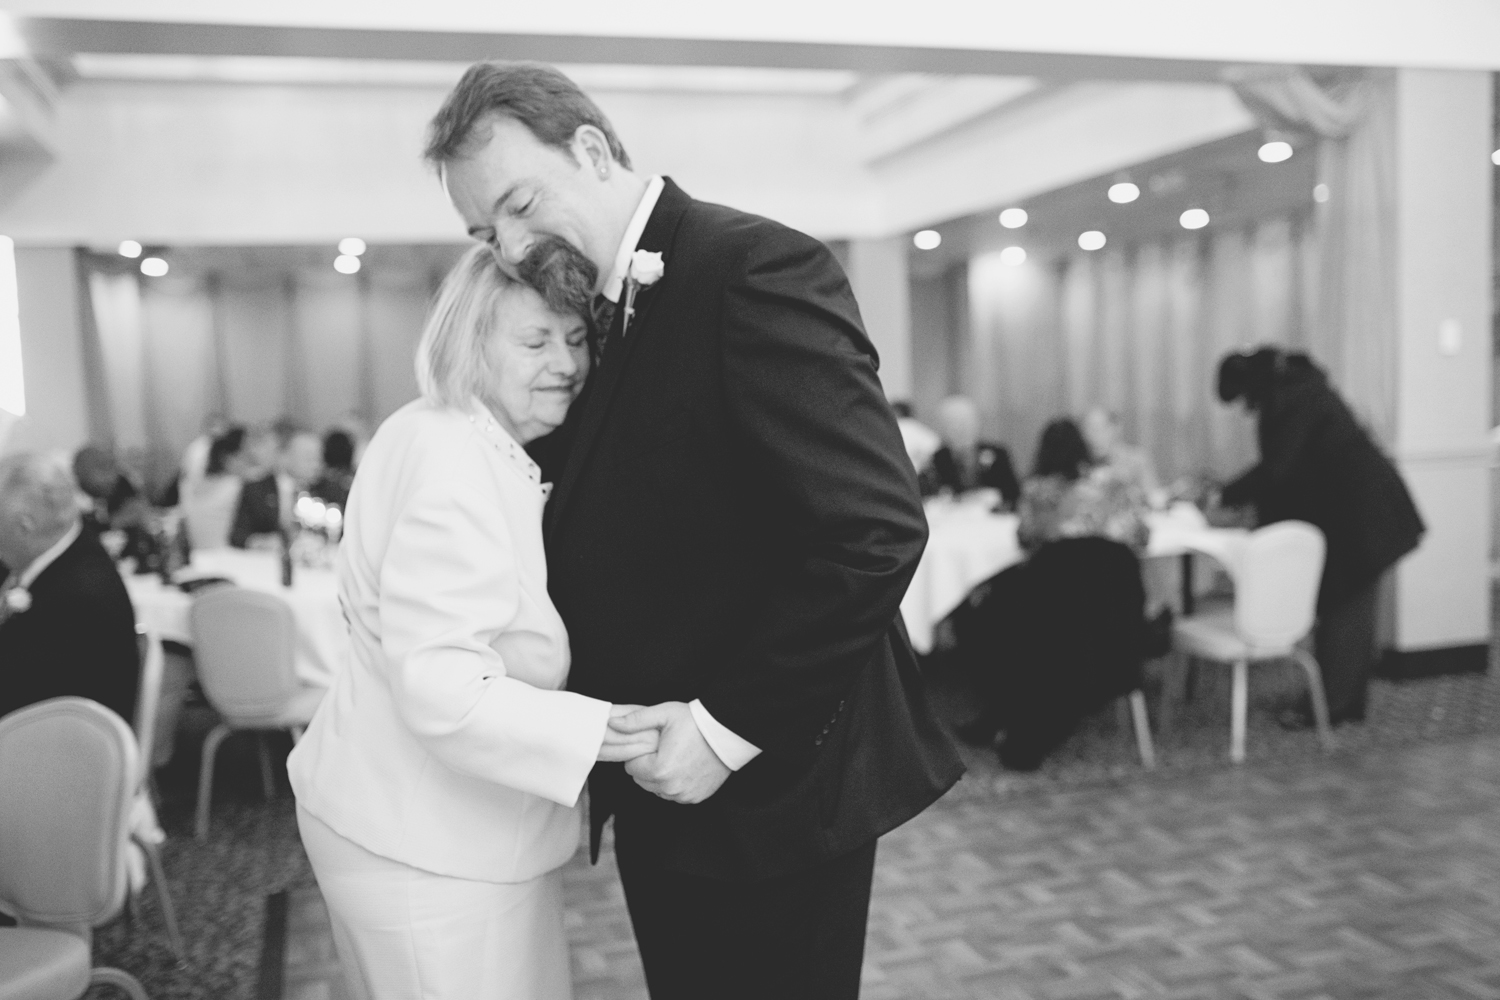 Mother and son on wedding day | Black and white